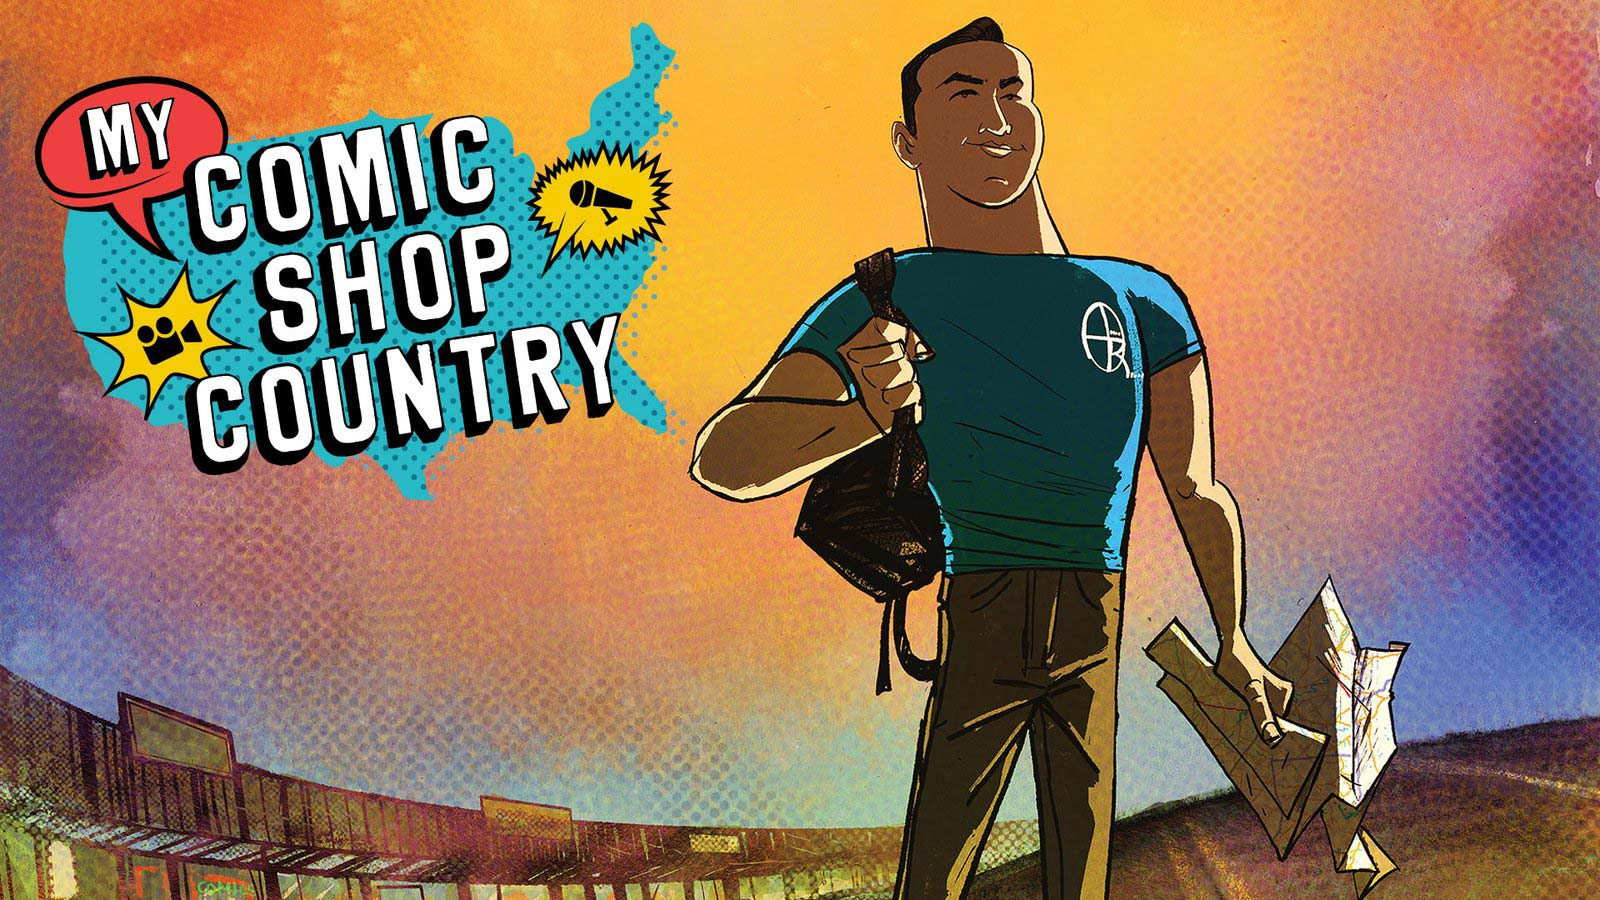 My Comic Shop Country - image